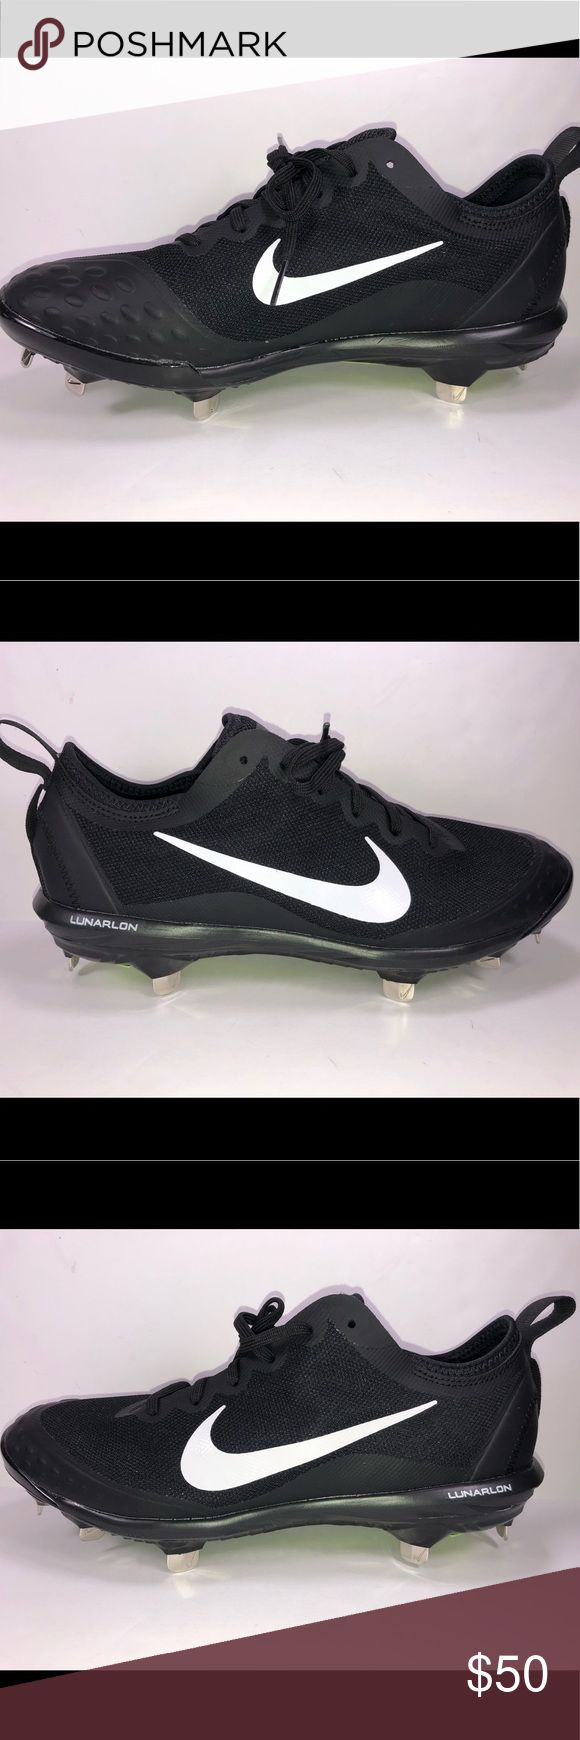 Nike Lunar Hyperdiamond 2 Elite Softball Cleat 9.5 Excellent Like New Condition Never Been Worn New Without Box. Metal Cleats. S501 Nike Shoes Athletic Shoes